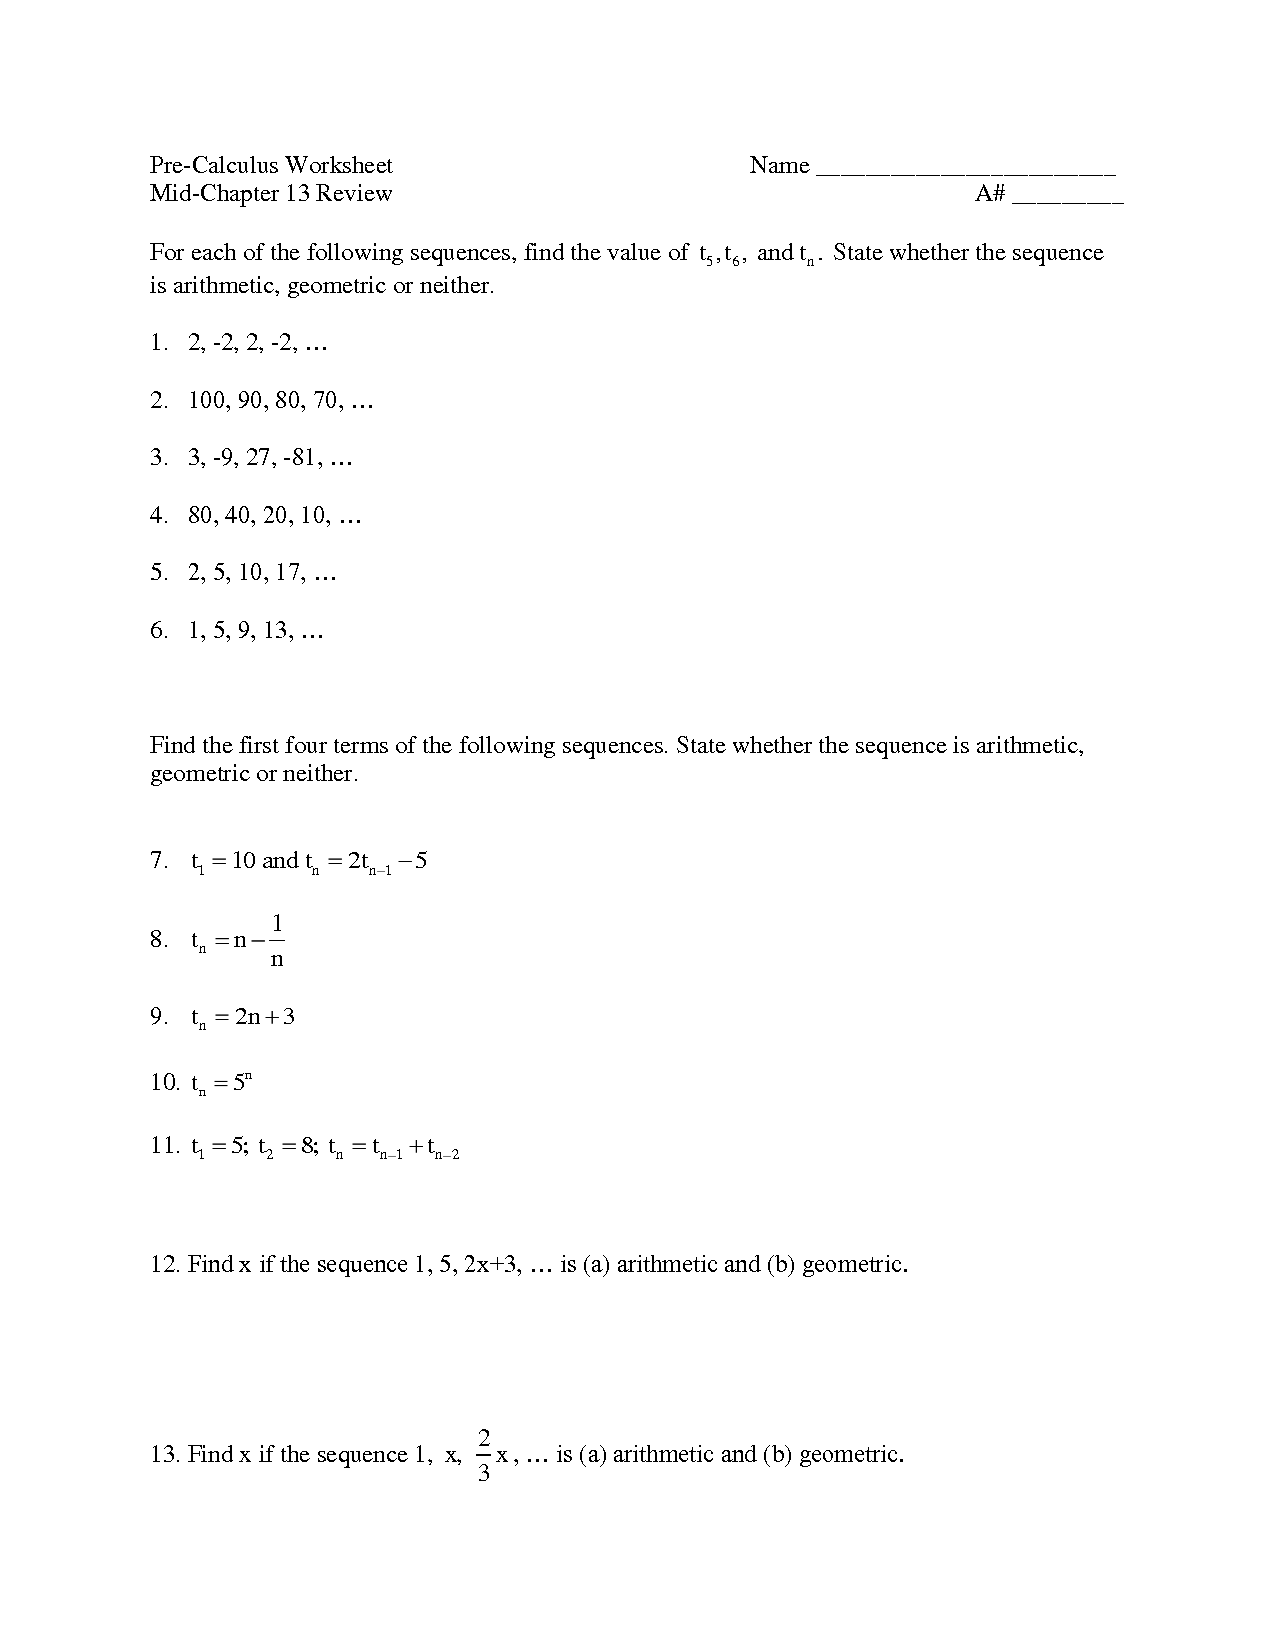 13 Best Calculus 1 Worksheets Images On Best Worksheets